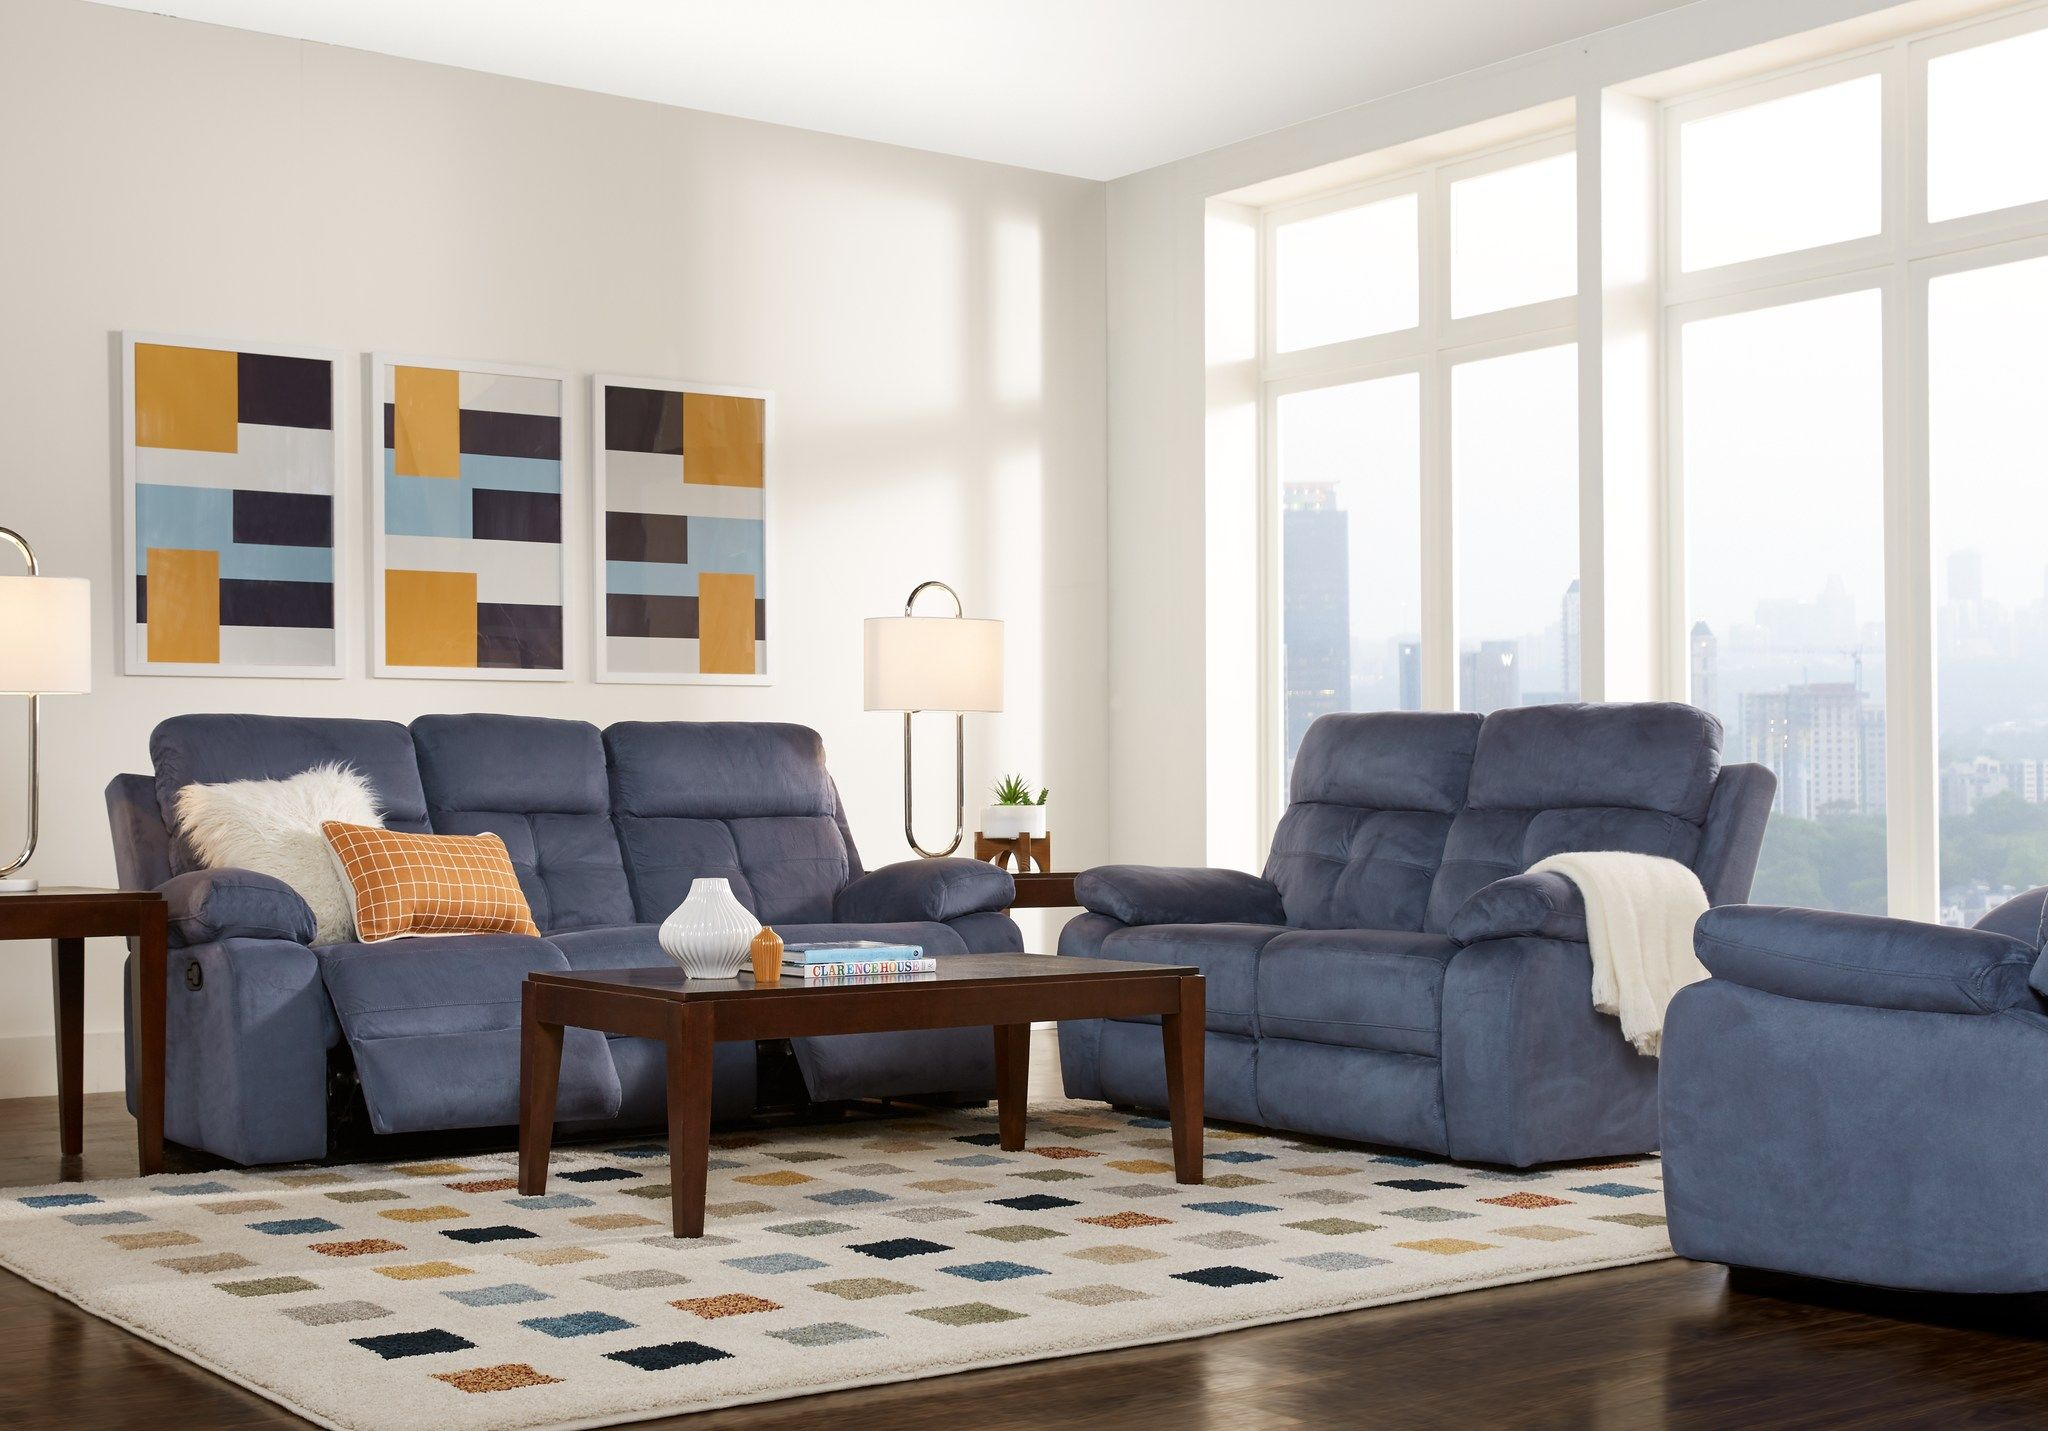 Upholstered Living Room Sets Fabric Microfiber Etc Living Room Sets Reclining Sofa Living Room Affordable Living Room Set